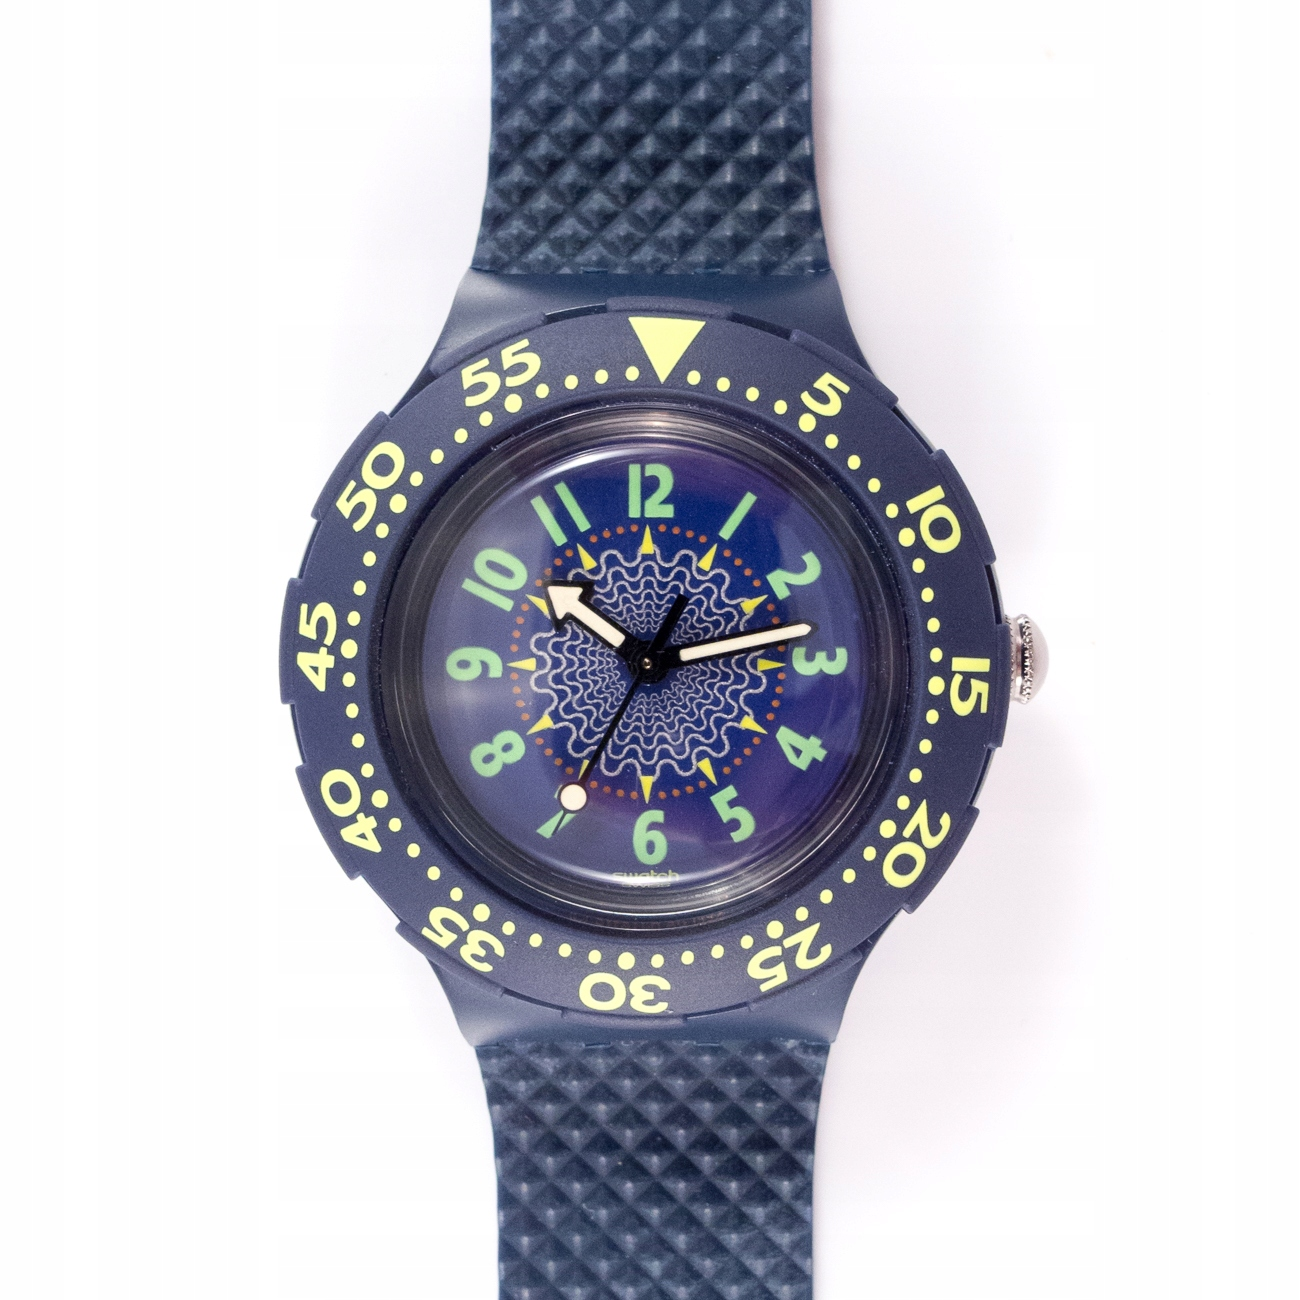 Swatch SDN104 - Rowing - NOS